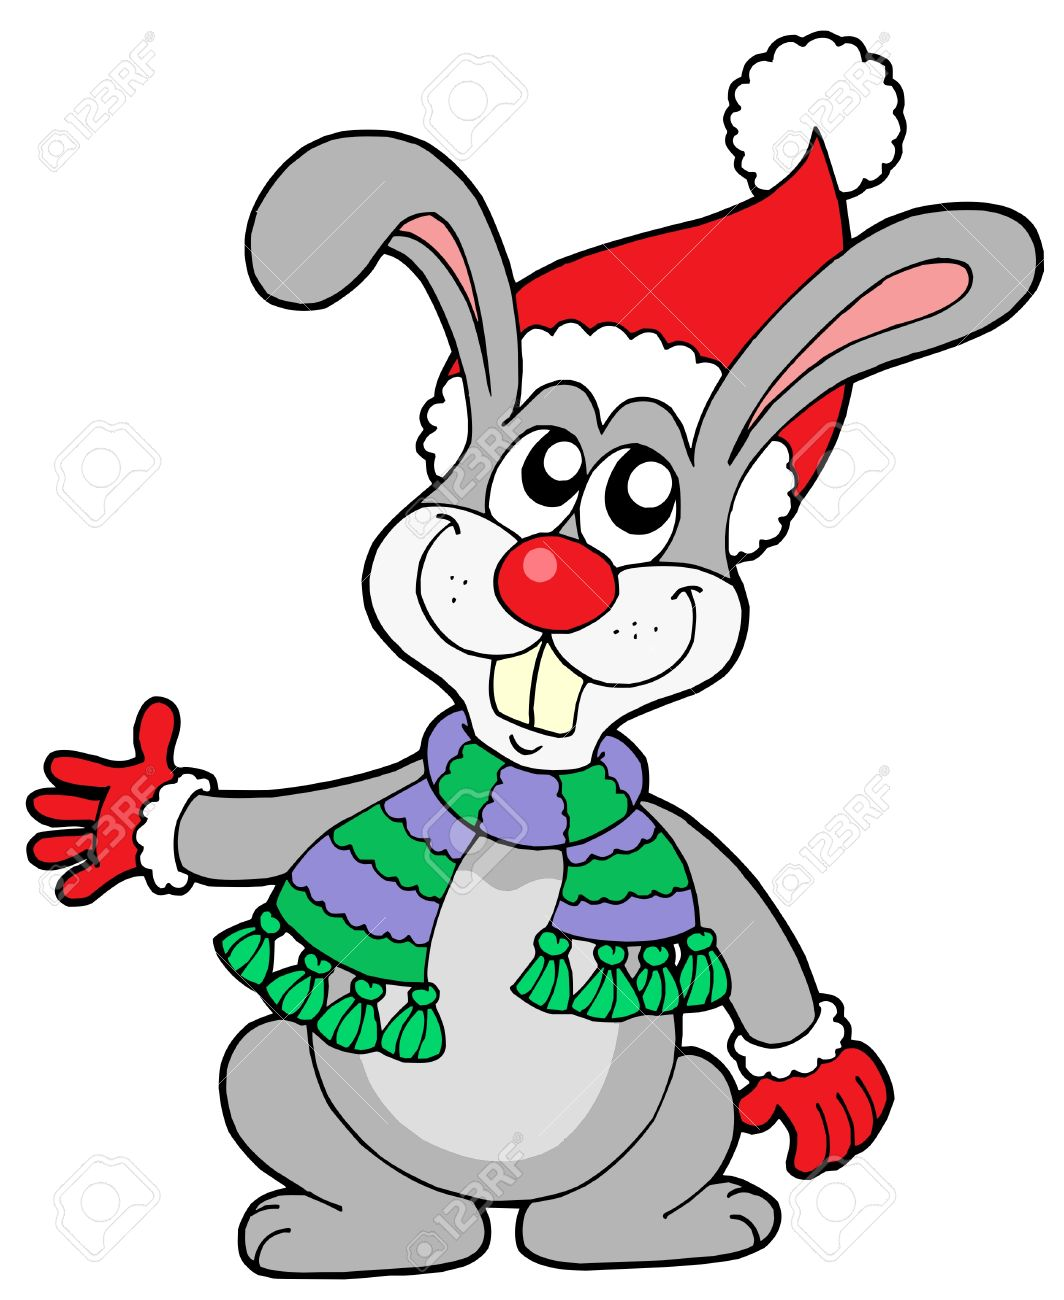 Free Christmas Bunny Clipart.